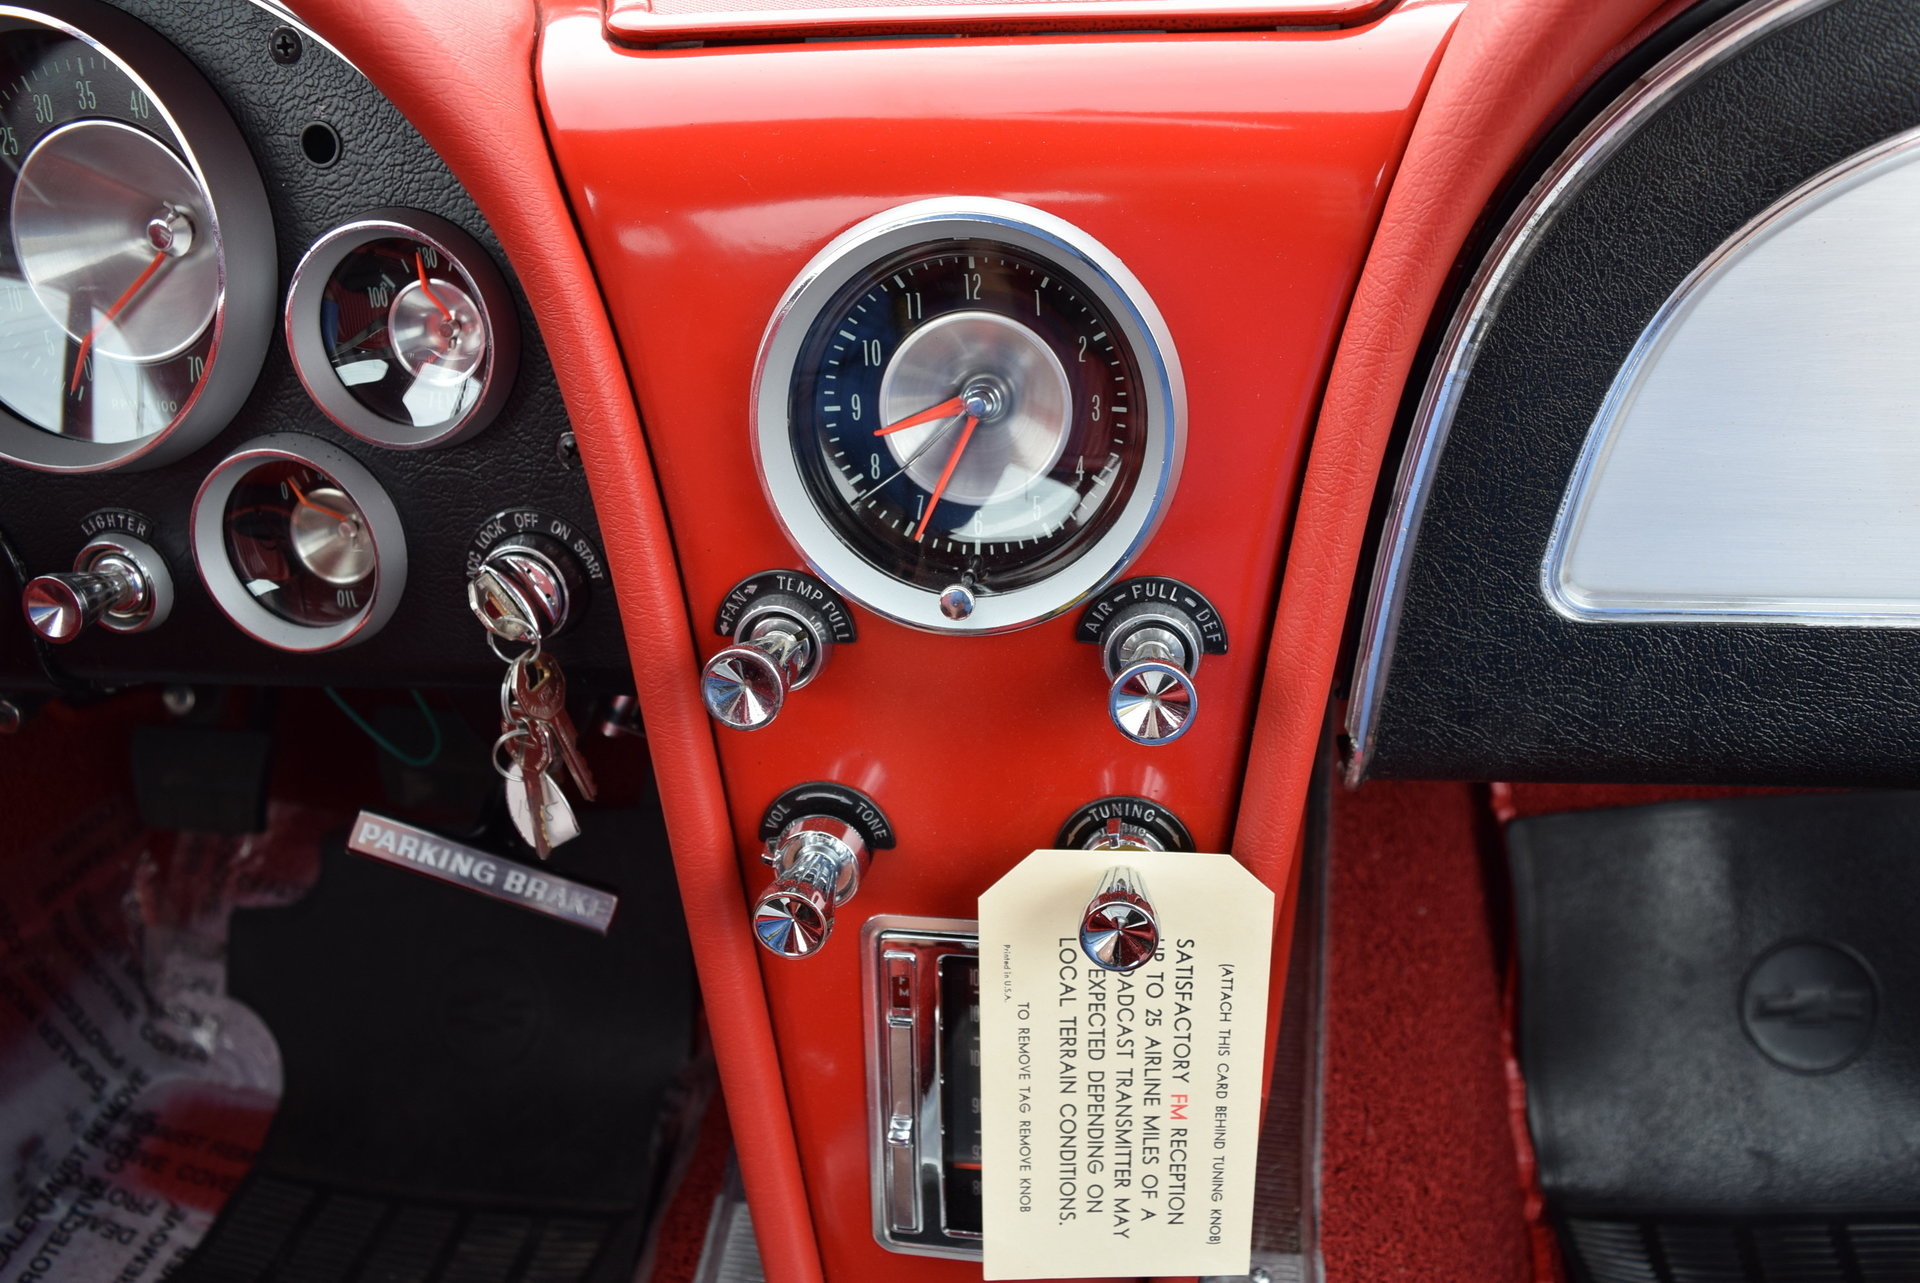 10284cbd3115_hd_1963-chevrolet-corvette-split-window-coupe Cool Review About Corvettes for Sale In Md with Extraordinary Images Cars Review